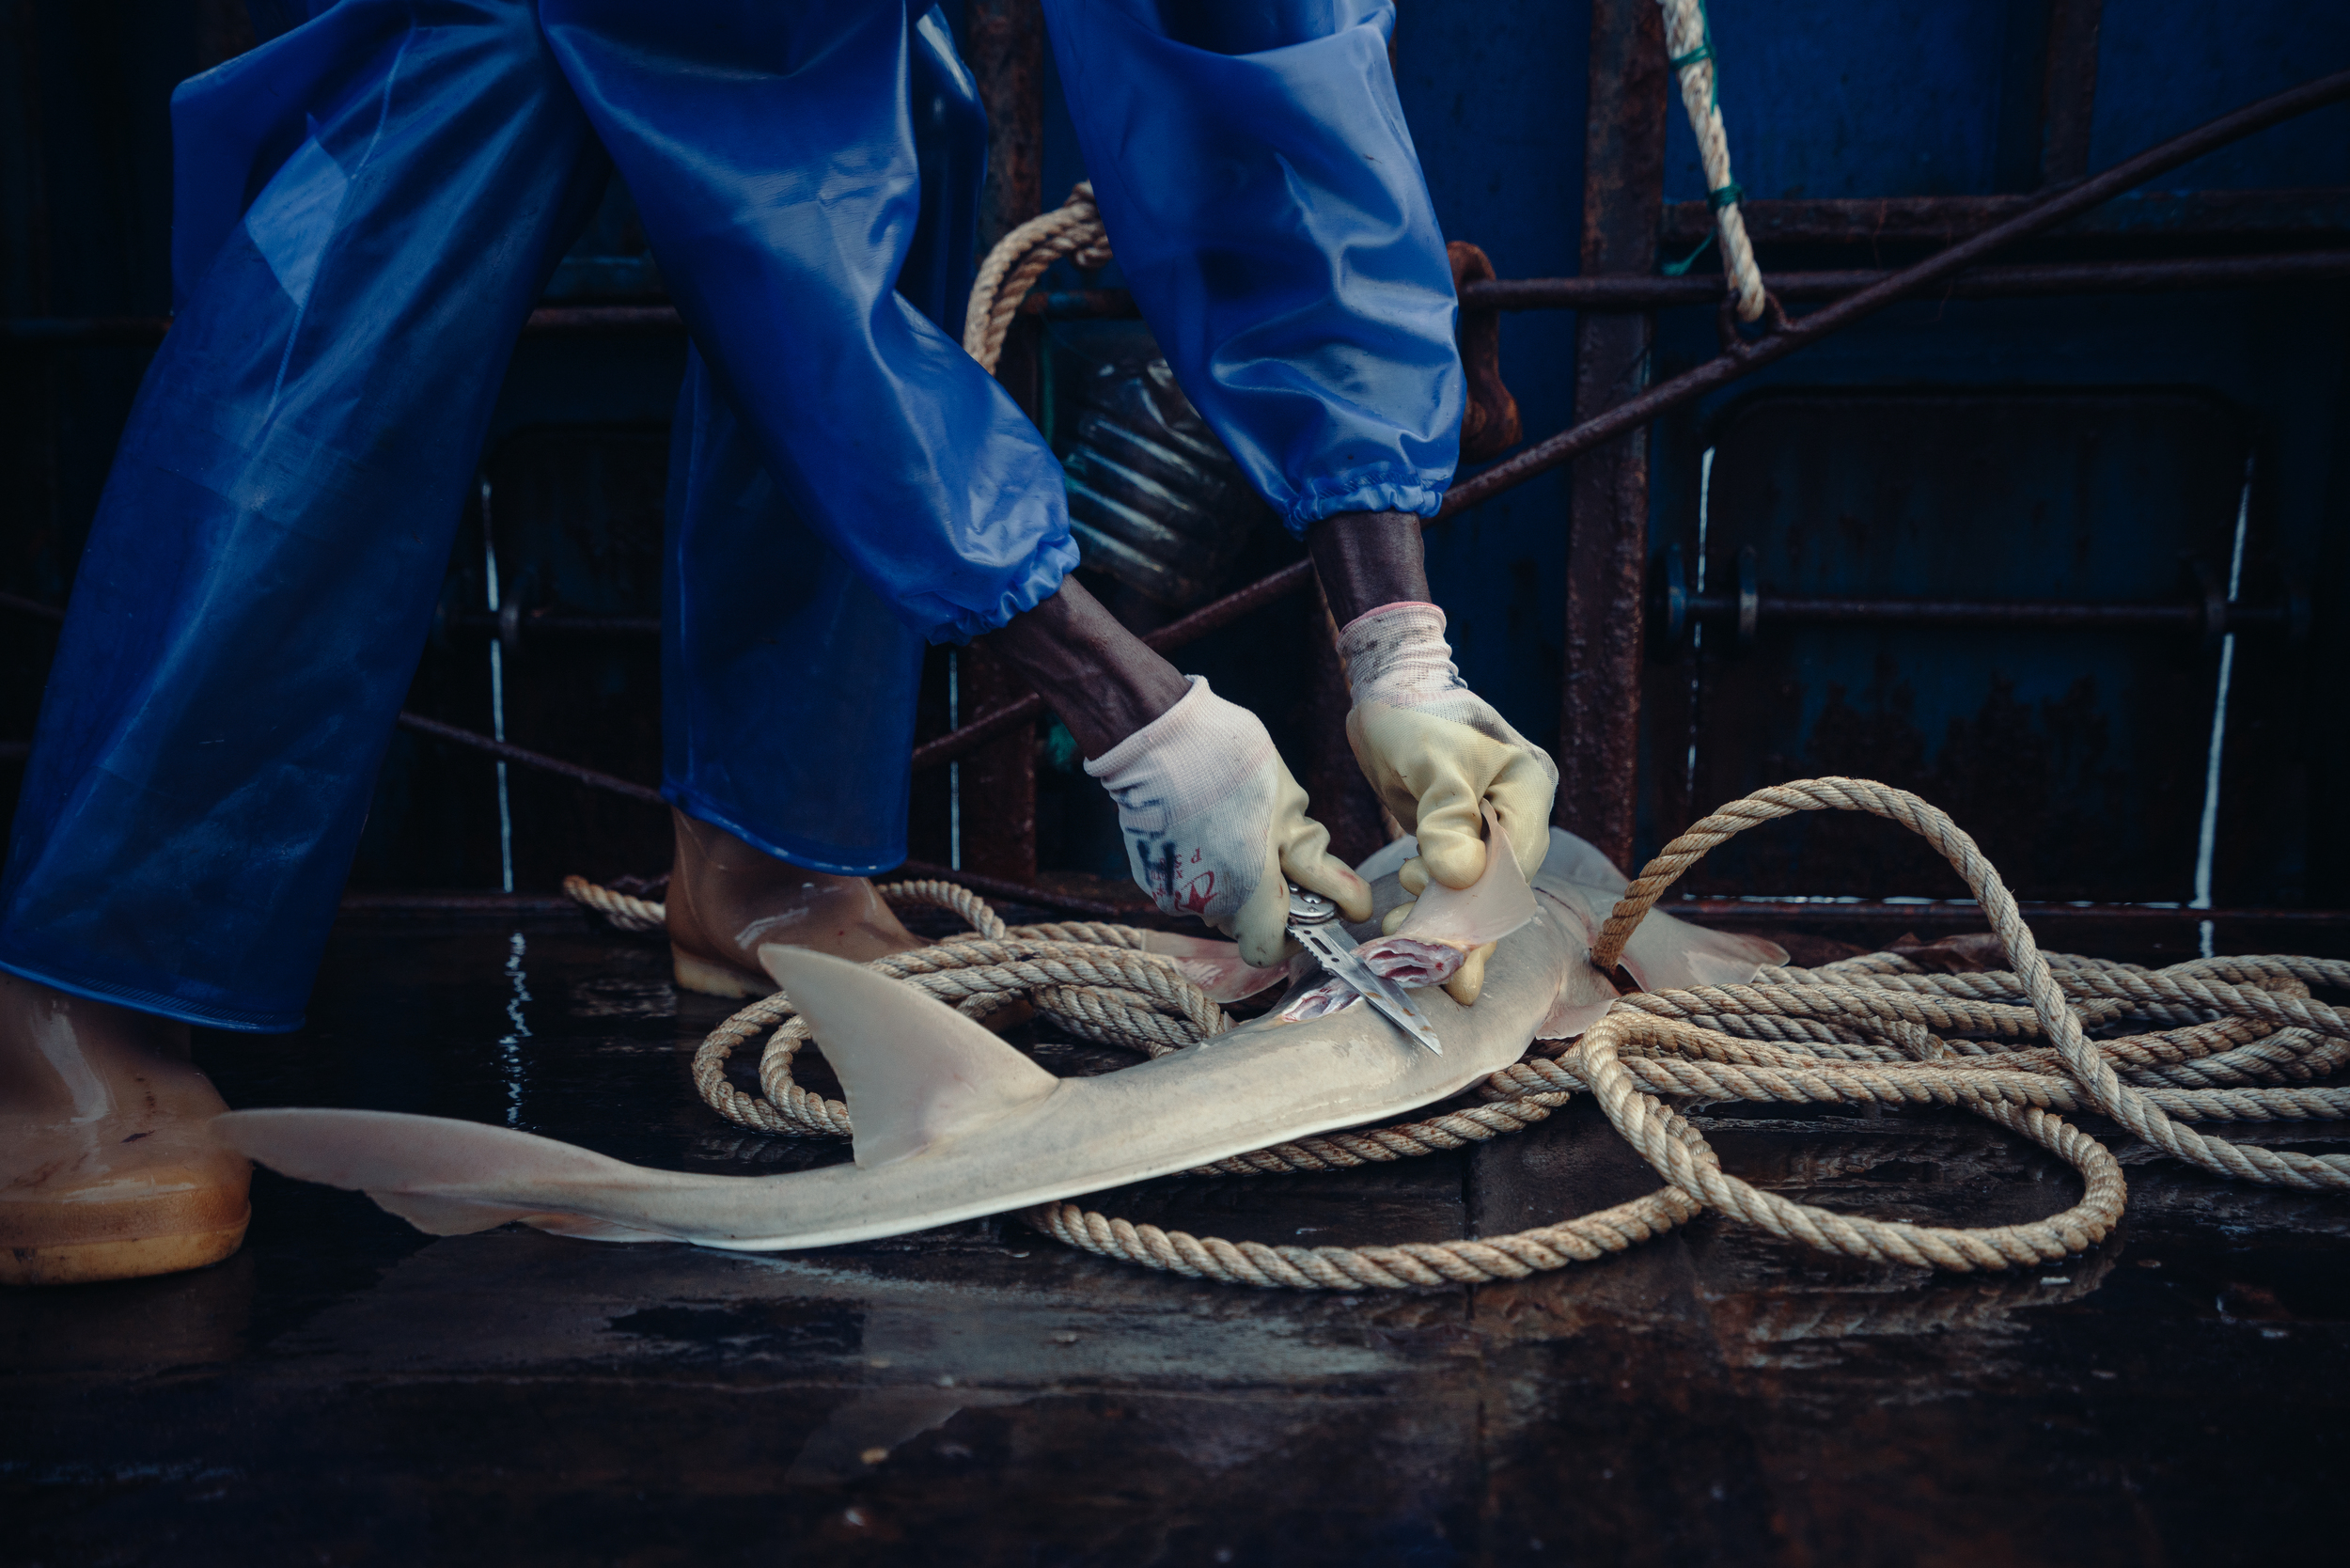 sailor cutting fins of a guitar fish